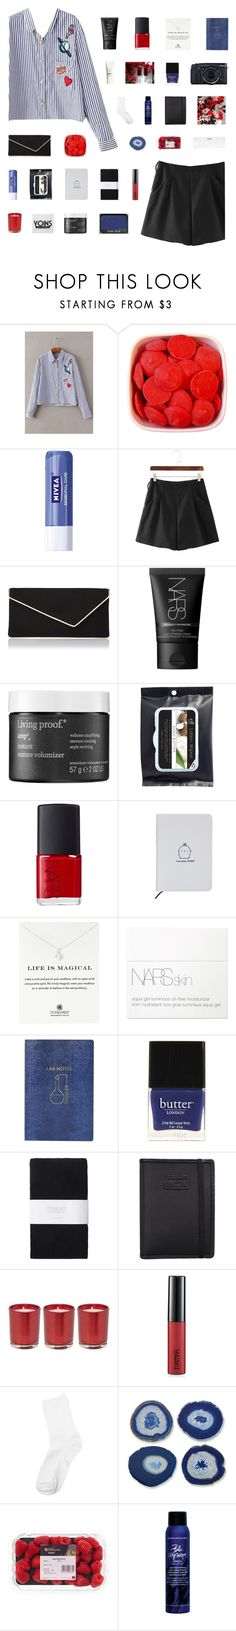 """YOINS // EMBRASSE-MOI"" by gintare-13 ❤ liked on Polyvore featuring Nivea, L.K.Bennett, NARS Cosmetics, Living Proof, Dogeared, Topshop, Butter London, Toast, Fujifilm and Nava"